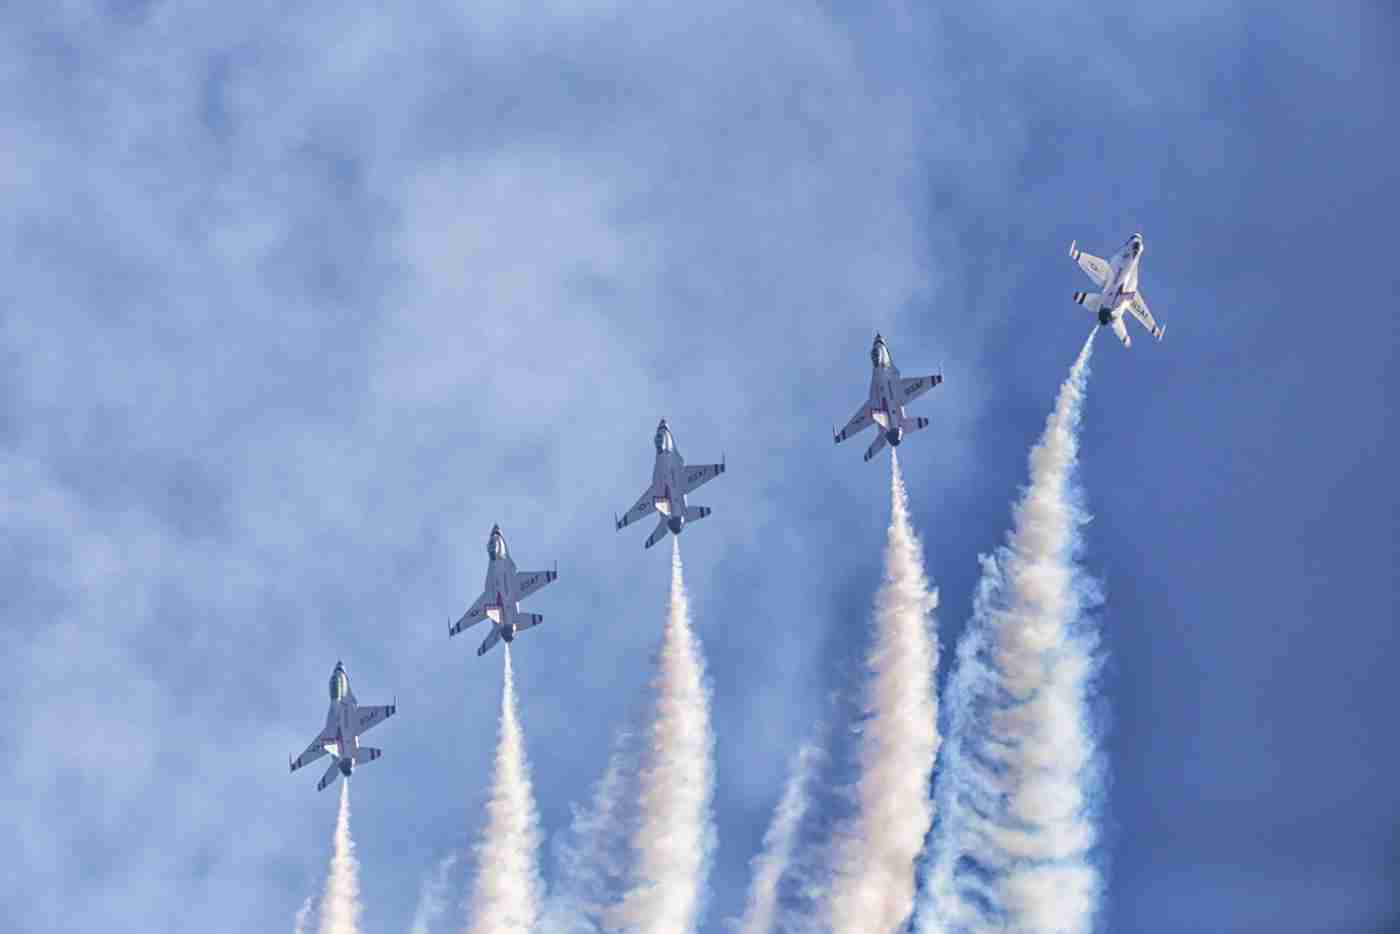 Five Air Force Thunderbird F-16s A Vertical Mile Up